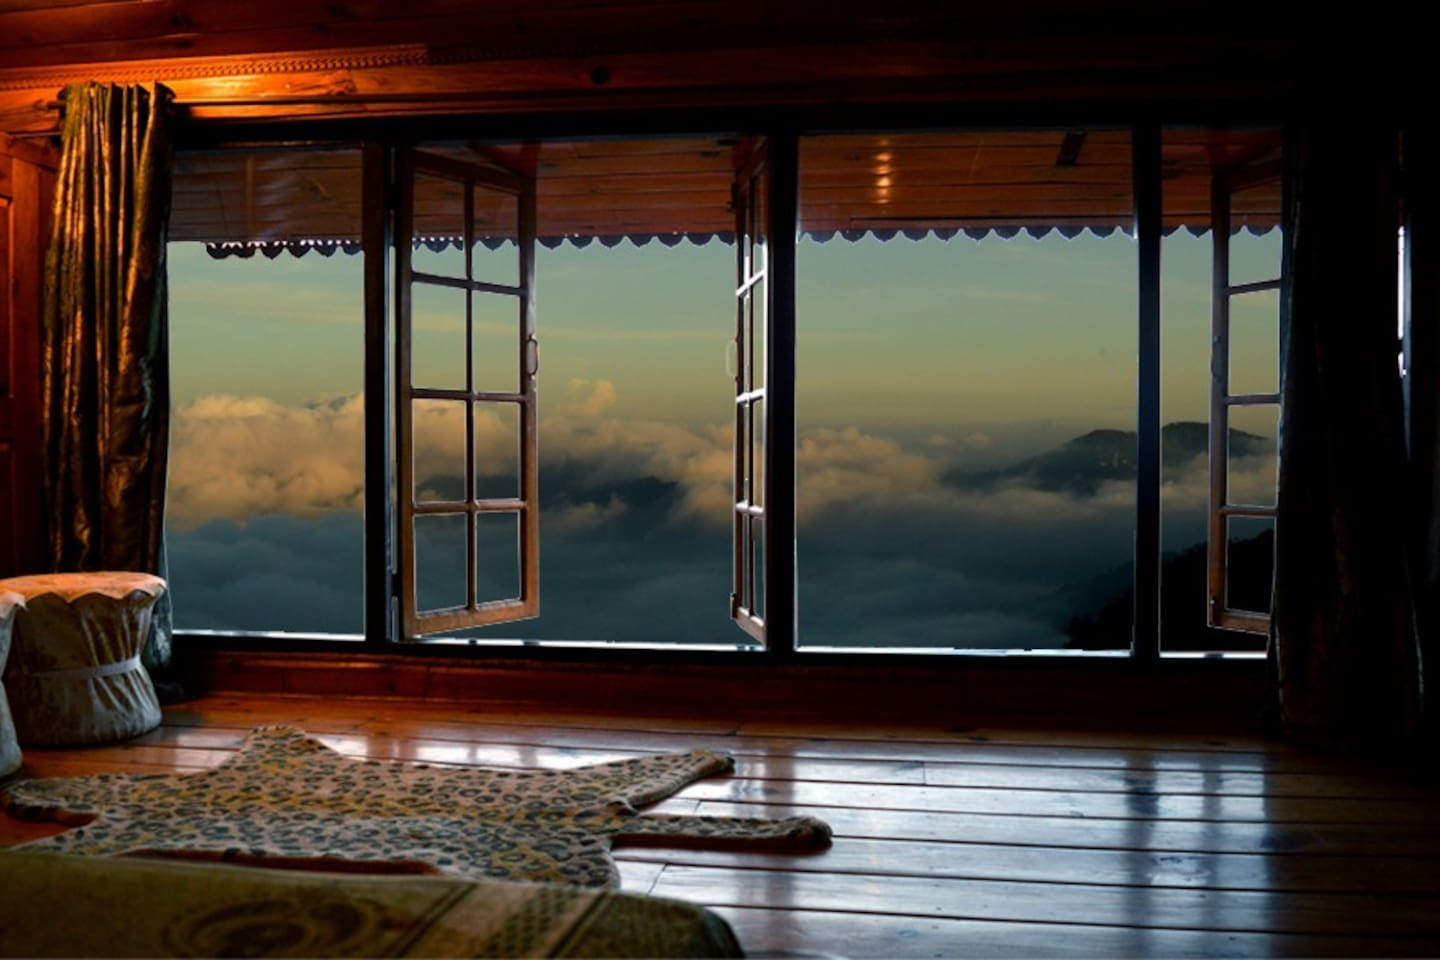 Monsoon clouds surrounding the chalet.